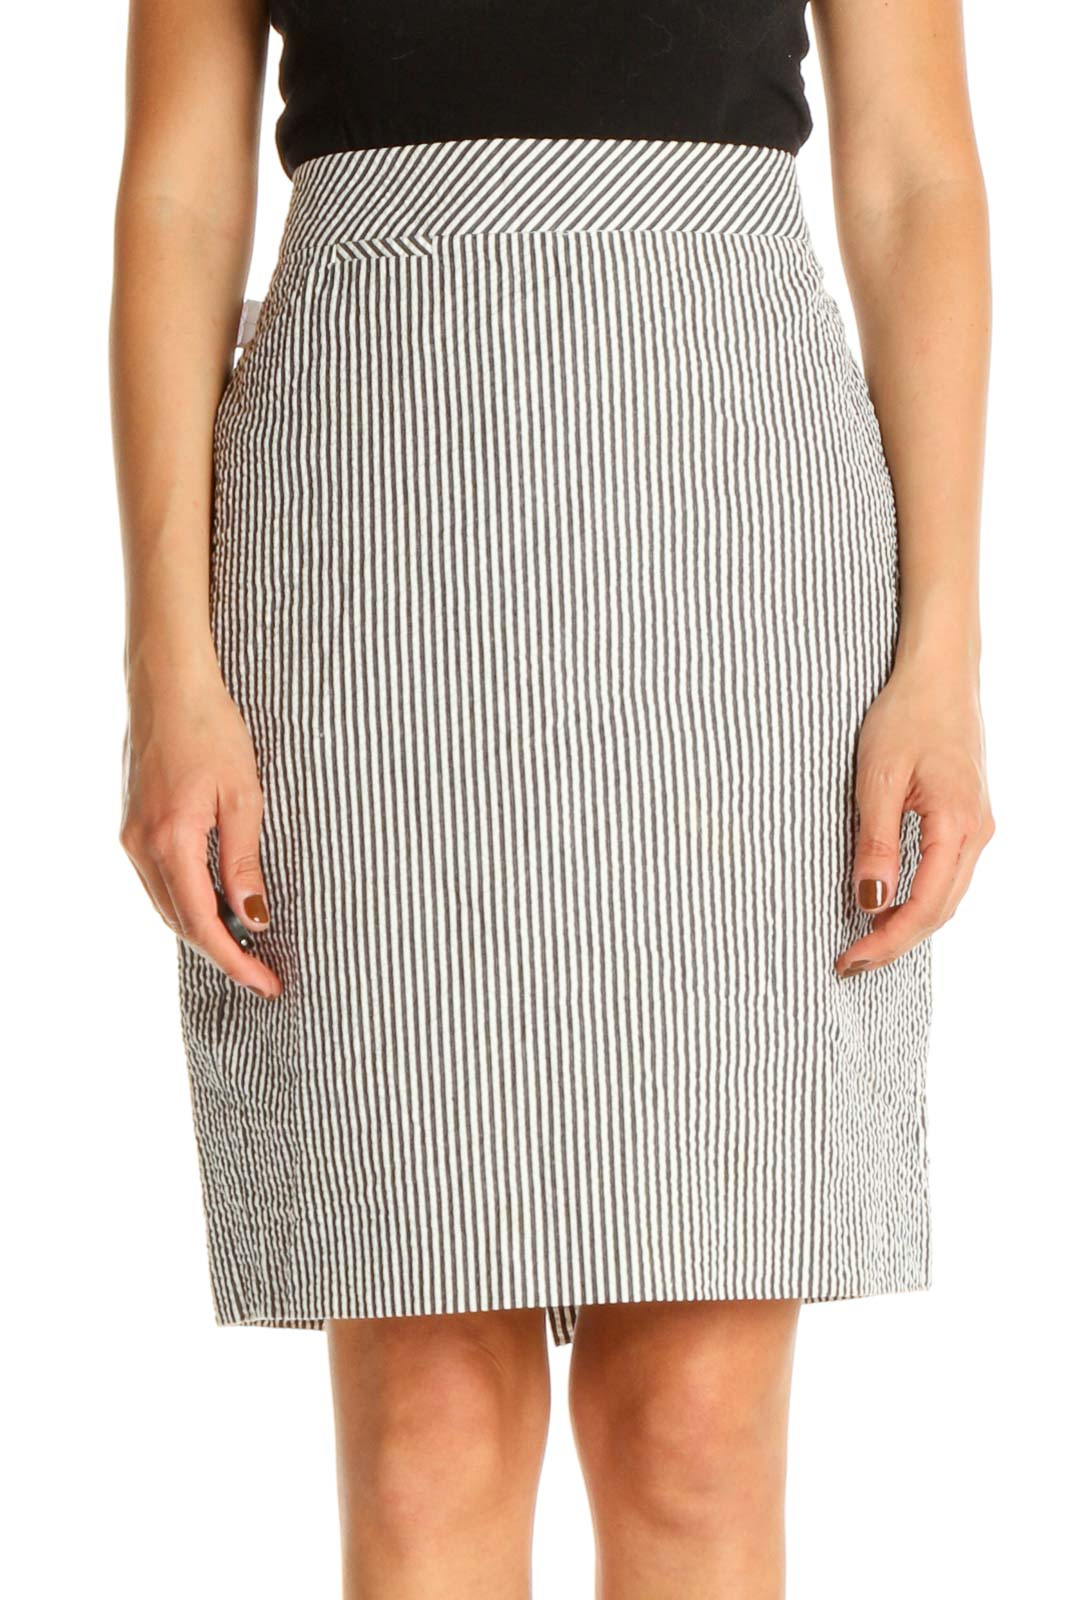 White Printed All Day Wear Pencil Skirt Front